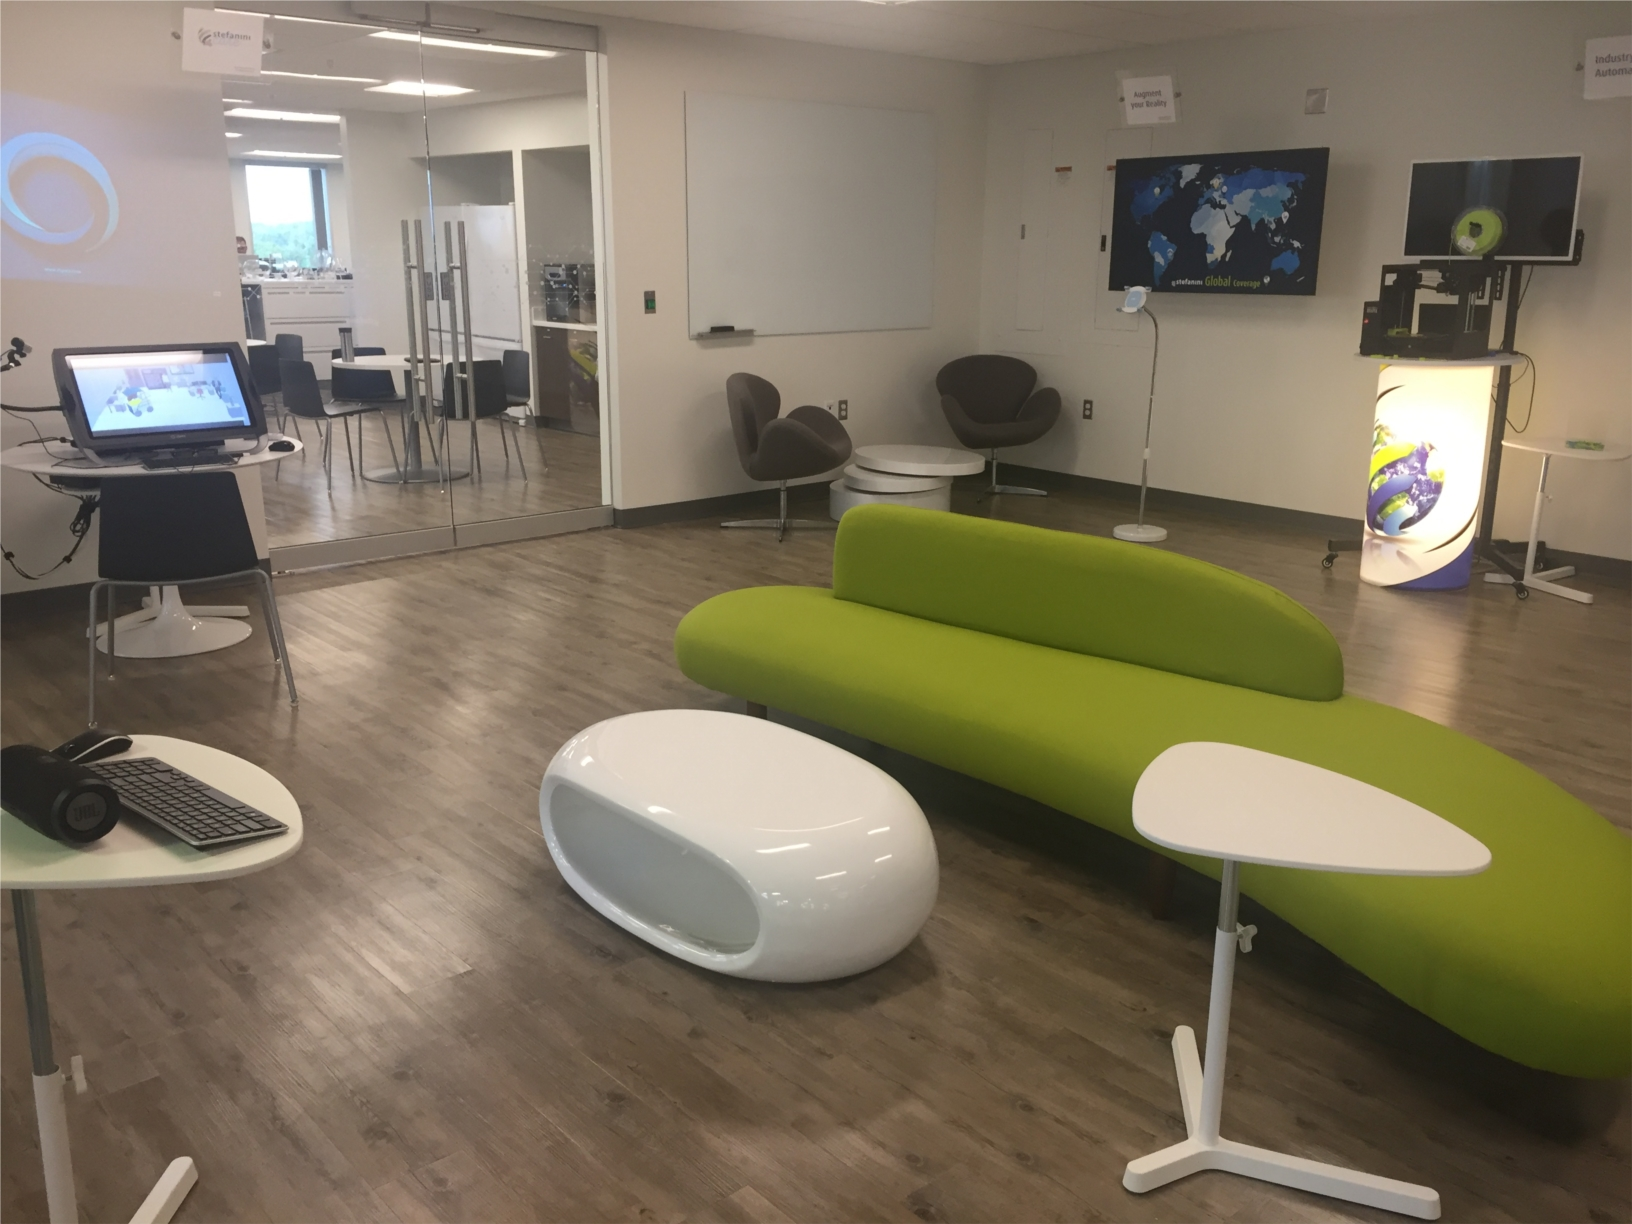 This is our innovation center. We use this space to create new solutions for our clients.